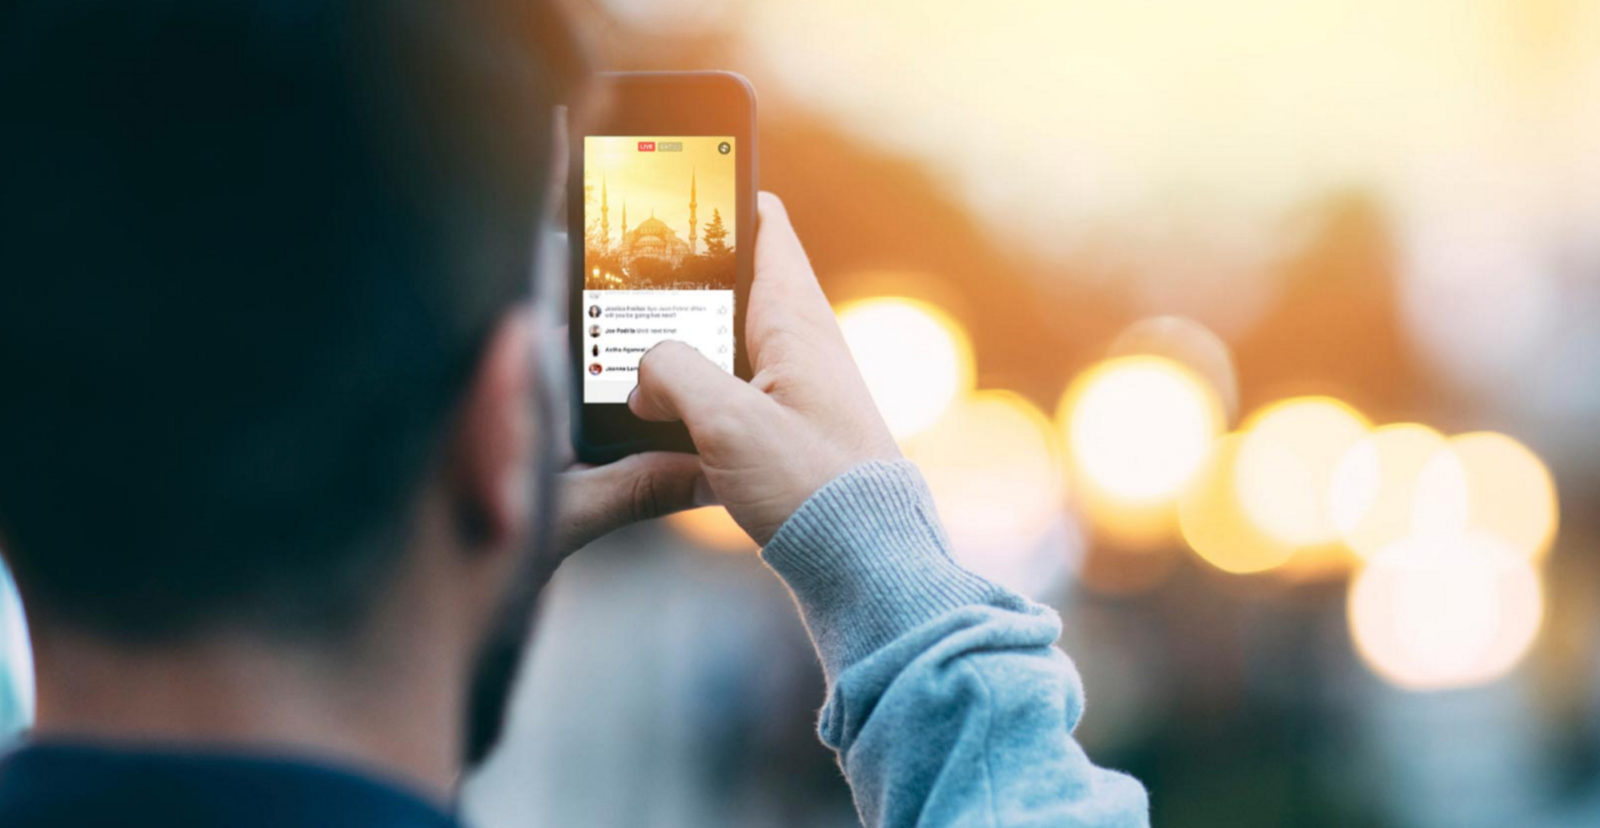 live streaming on social media from a smart phone